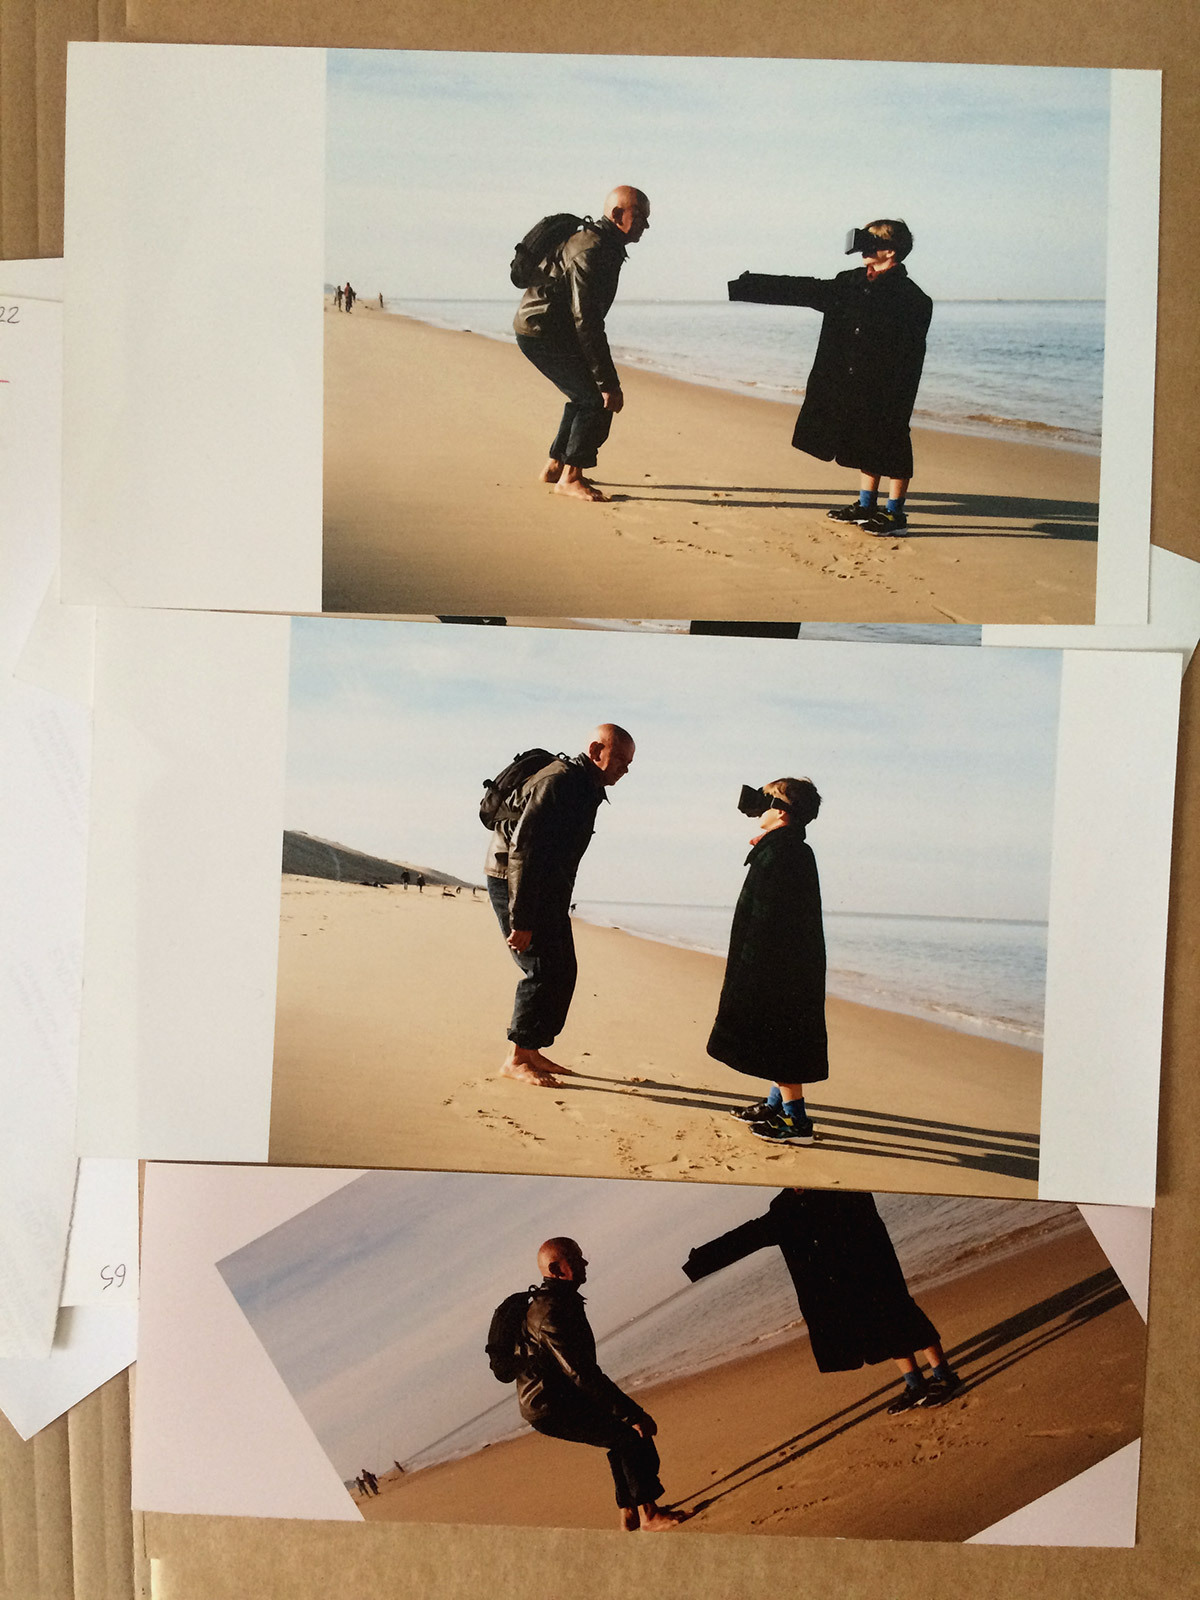 My father, Tatus, and my little brother fooling around with reality on the Dune du Pilat beach, published in an editorial for* M le Monde*. *{Styling by Anna Schiffel. Photo assistant : François Briens}* - © Maciek Pożoga